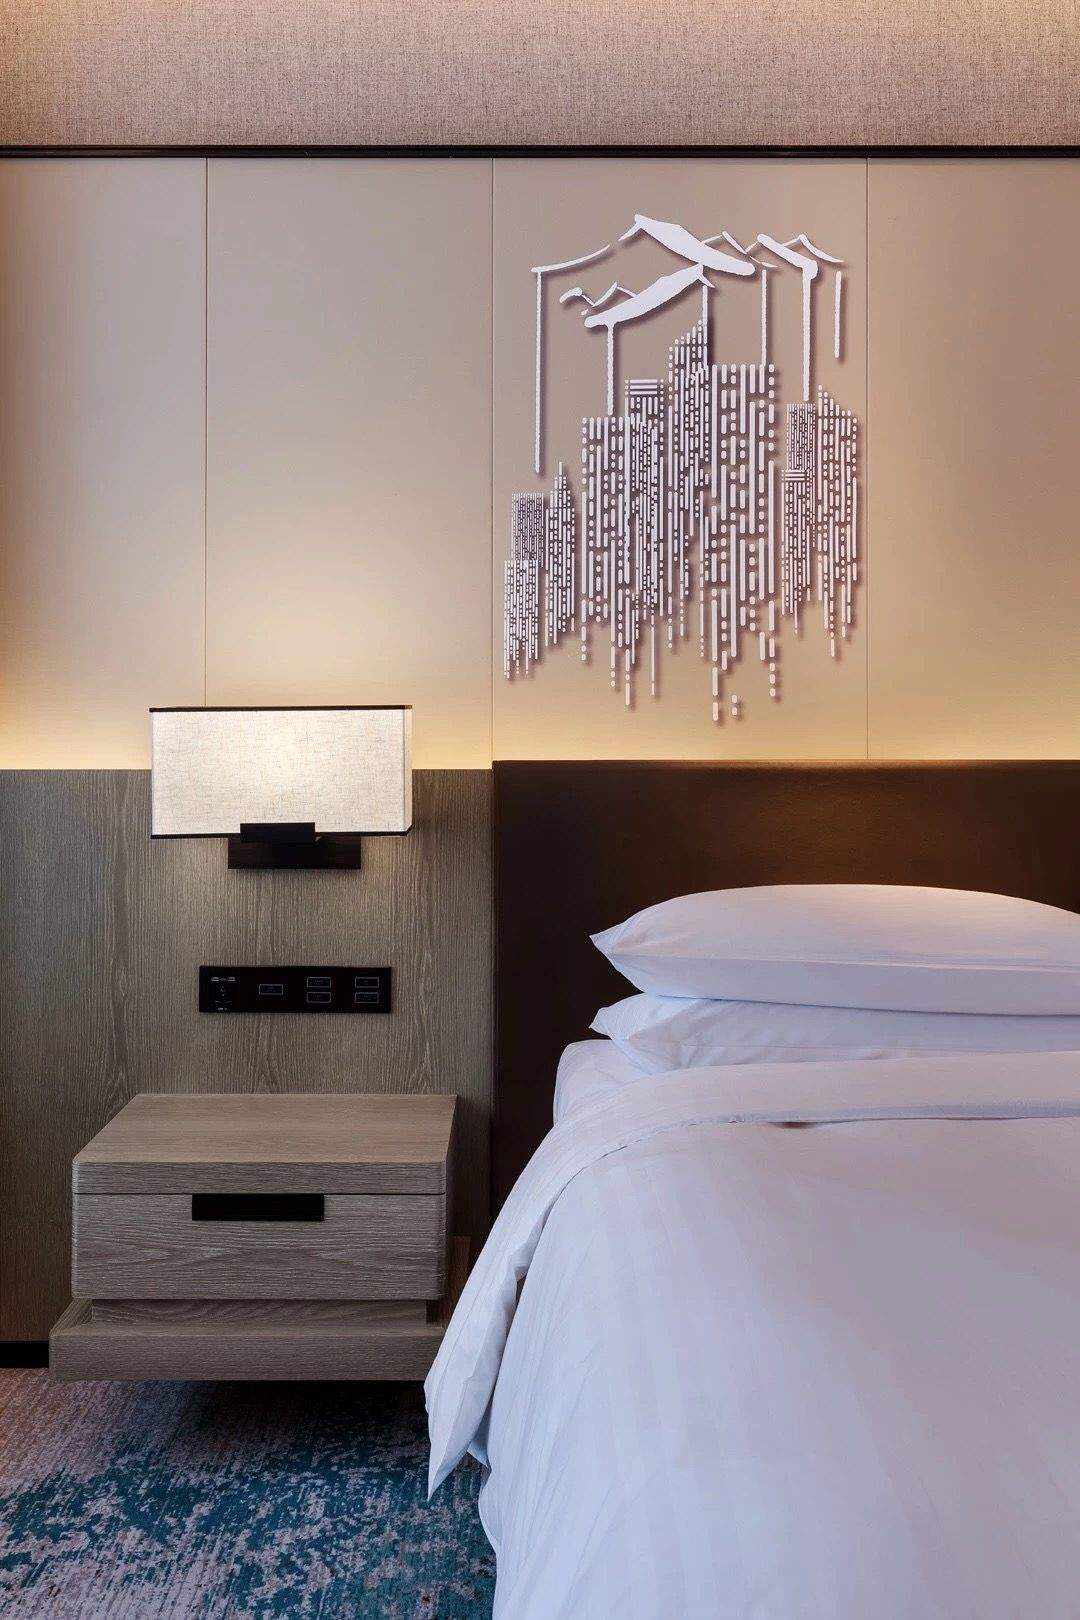 Hotel Room Inspiration: Luxury Hotel Room Image By 冯宁 Ning On A睡房